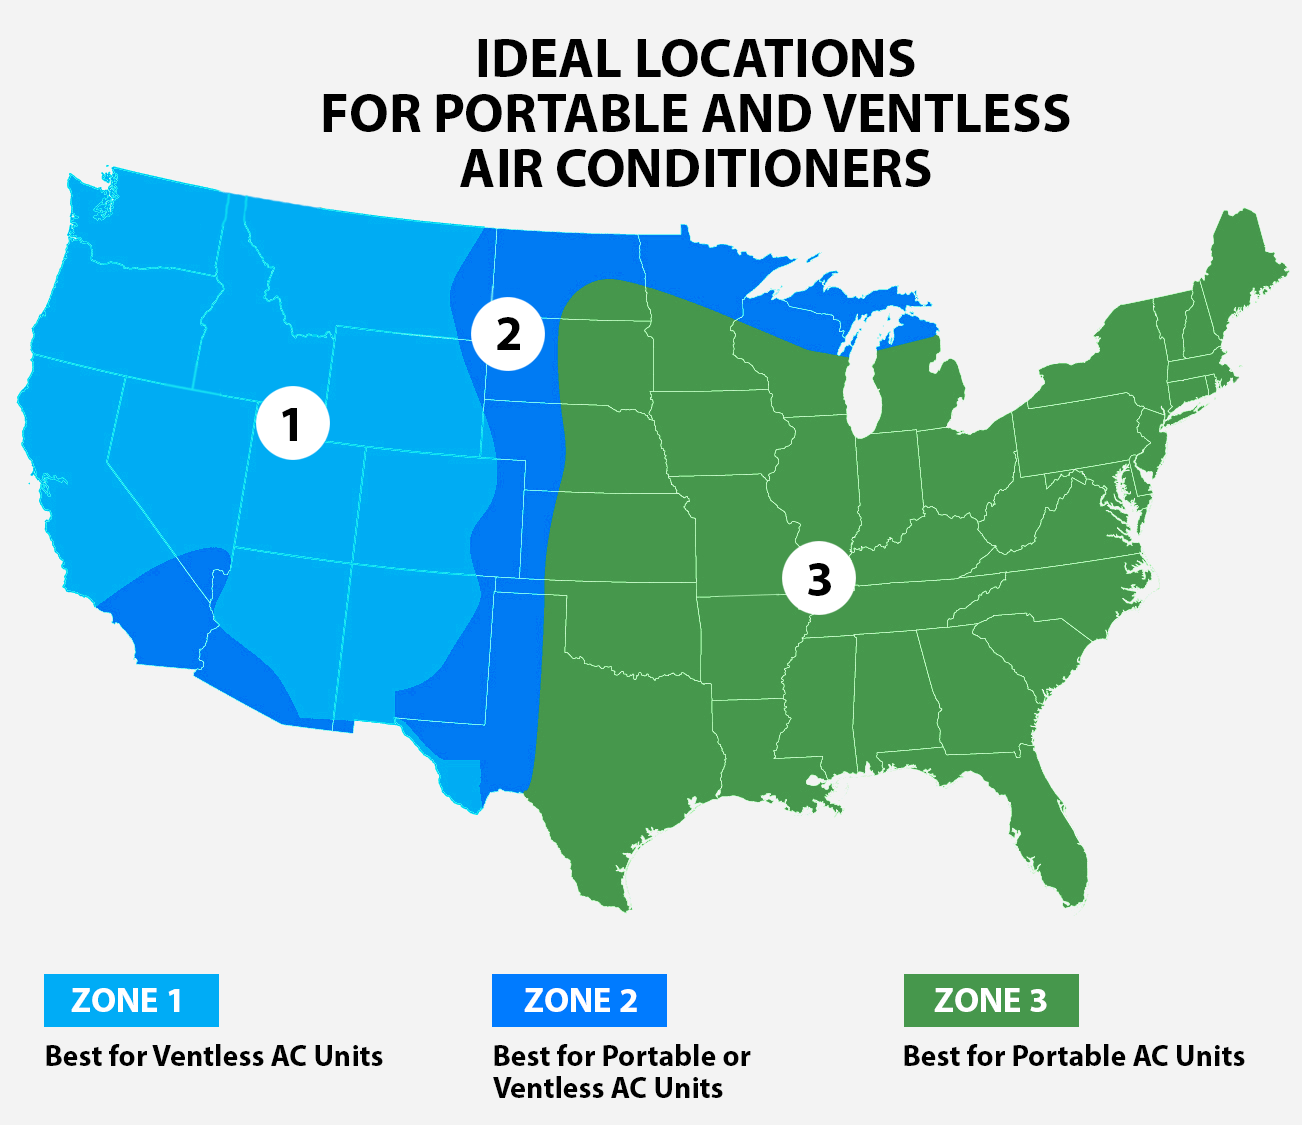 Map showing which regions of the U.S. are best for portable air conditioners versus ventless air conditioners